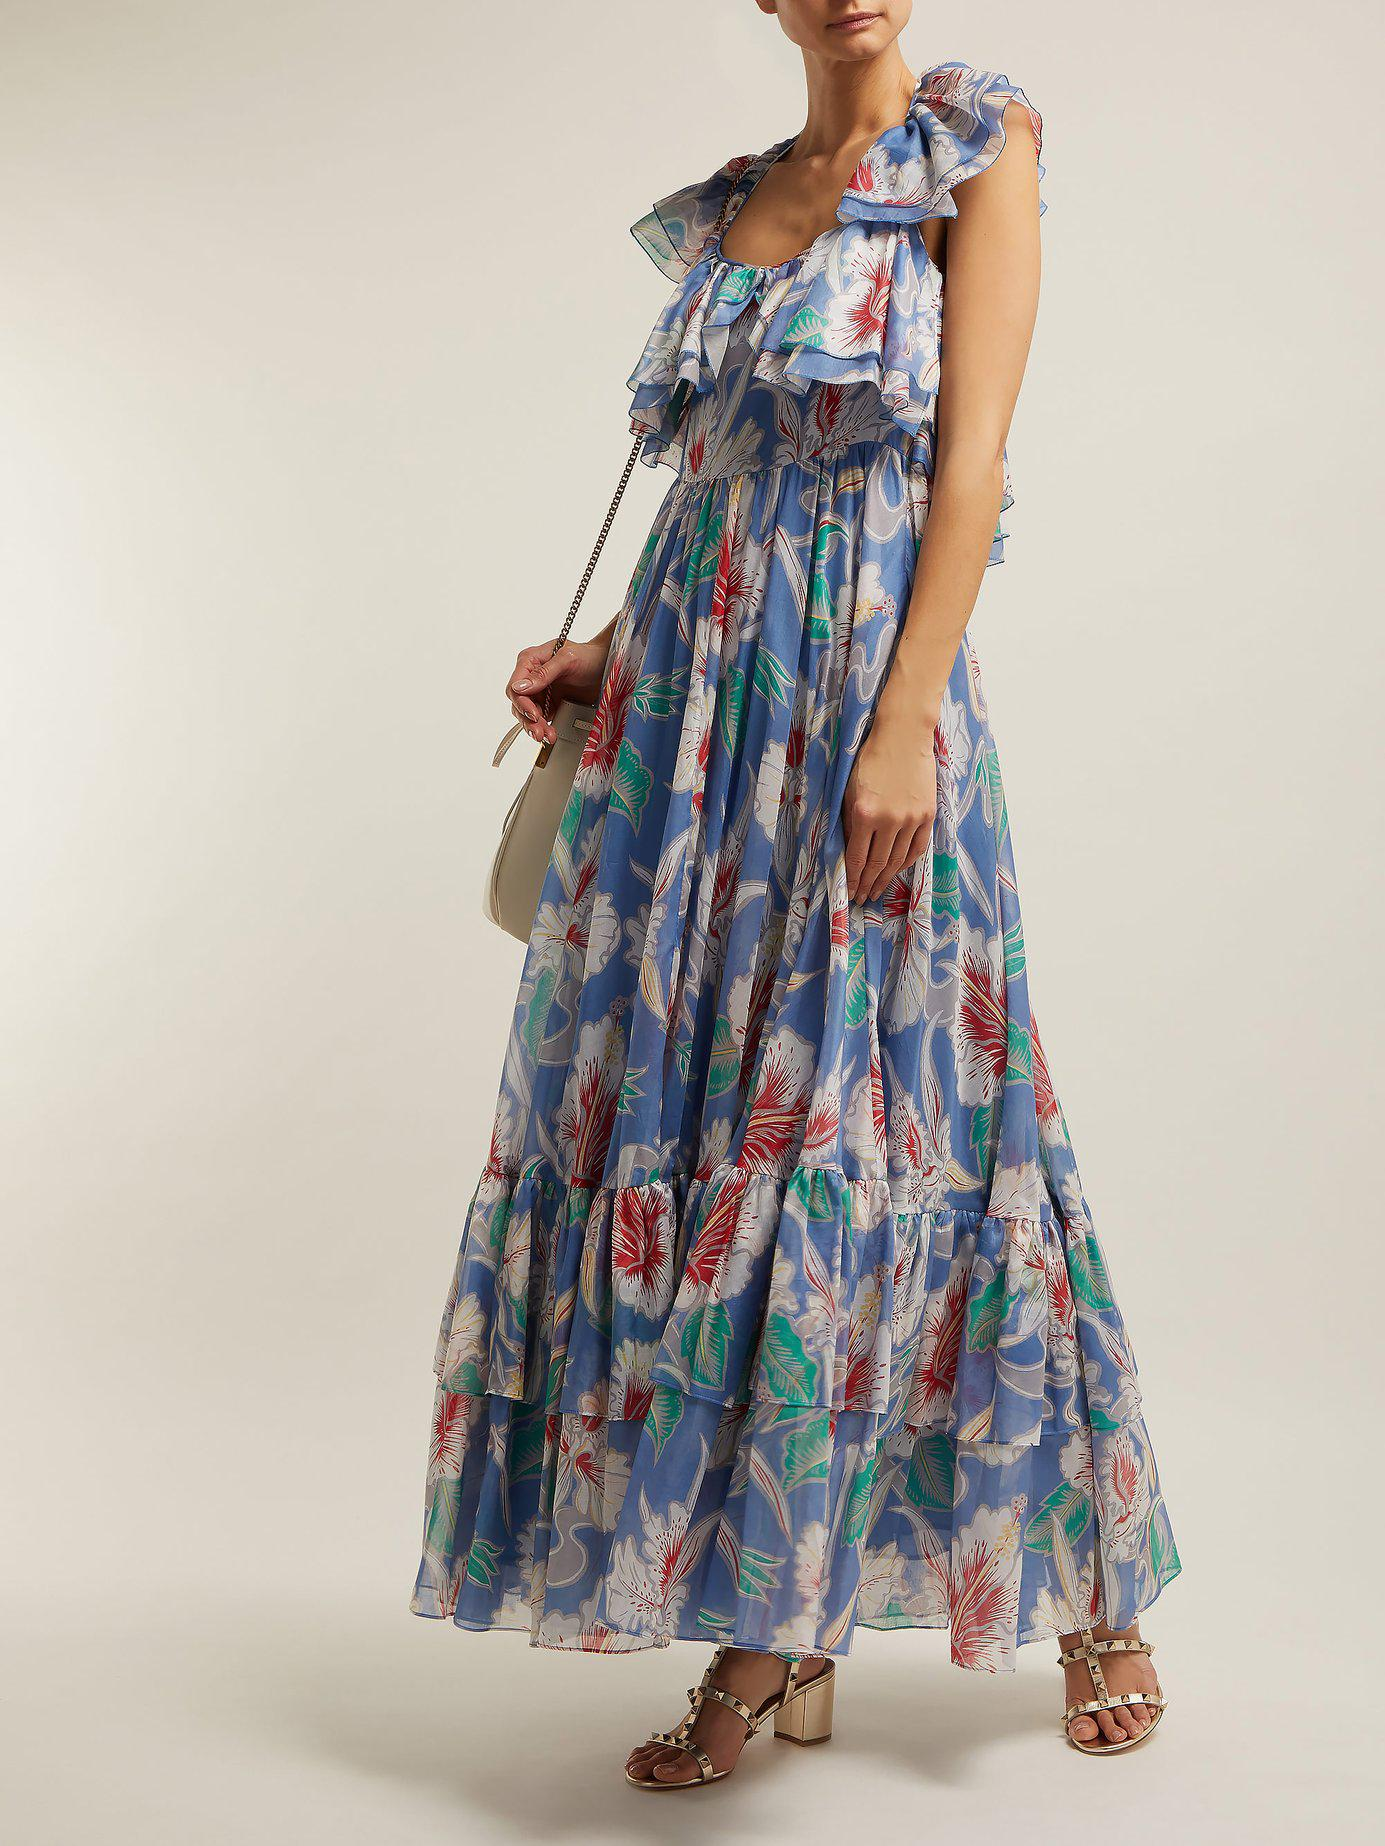 1eaee9dcecf5 Lyst - Valentino Hibiscus Print Cotton Maxi Dress in Blue